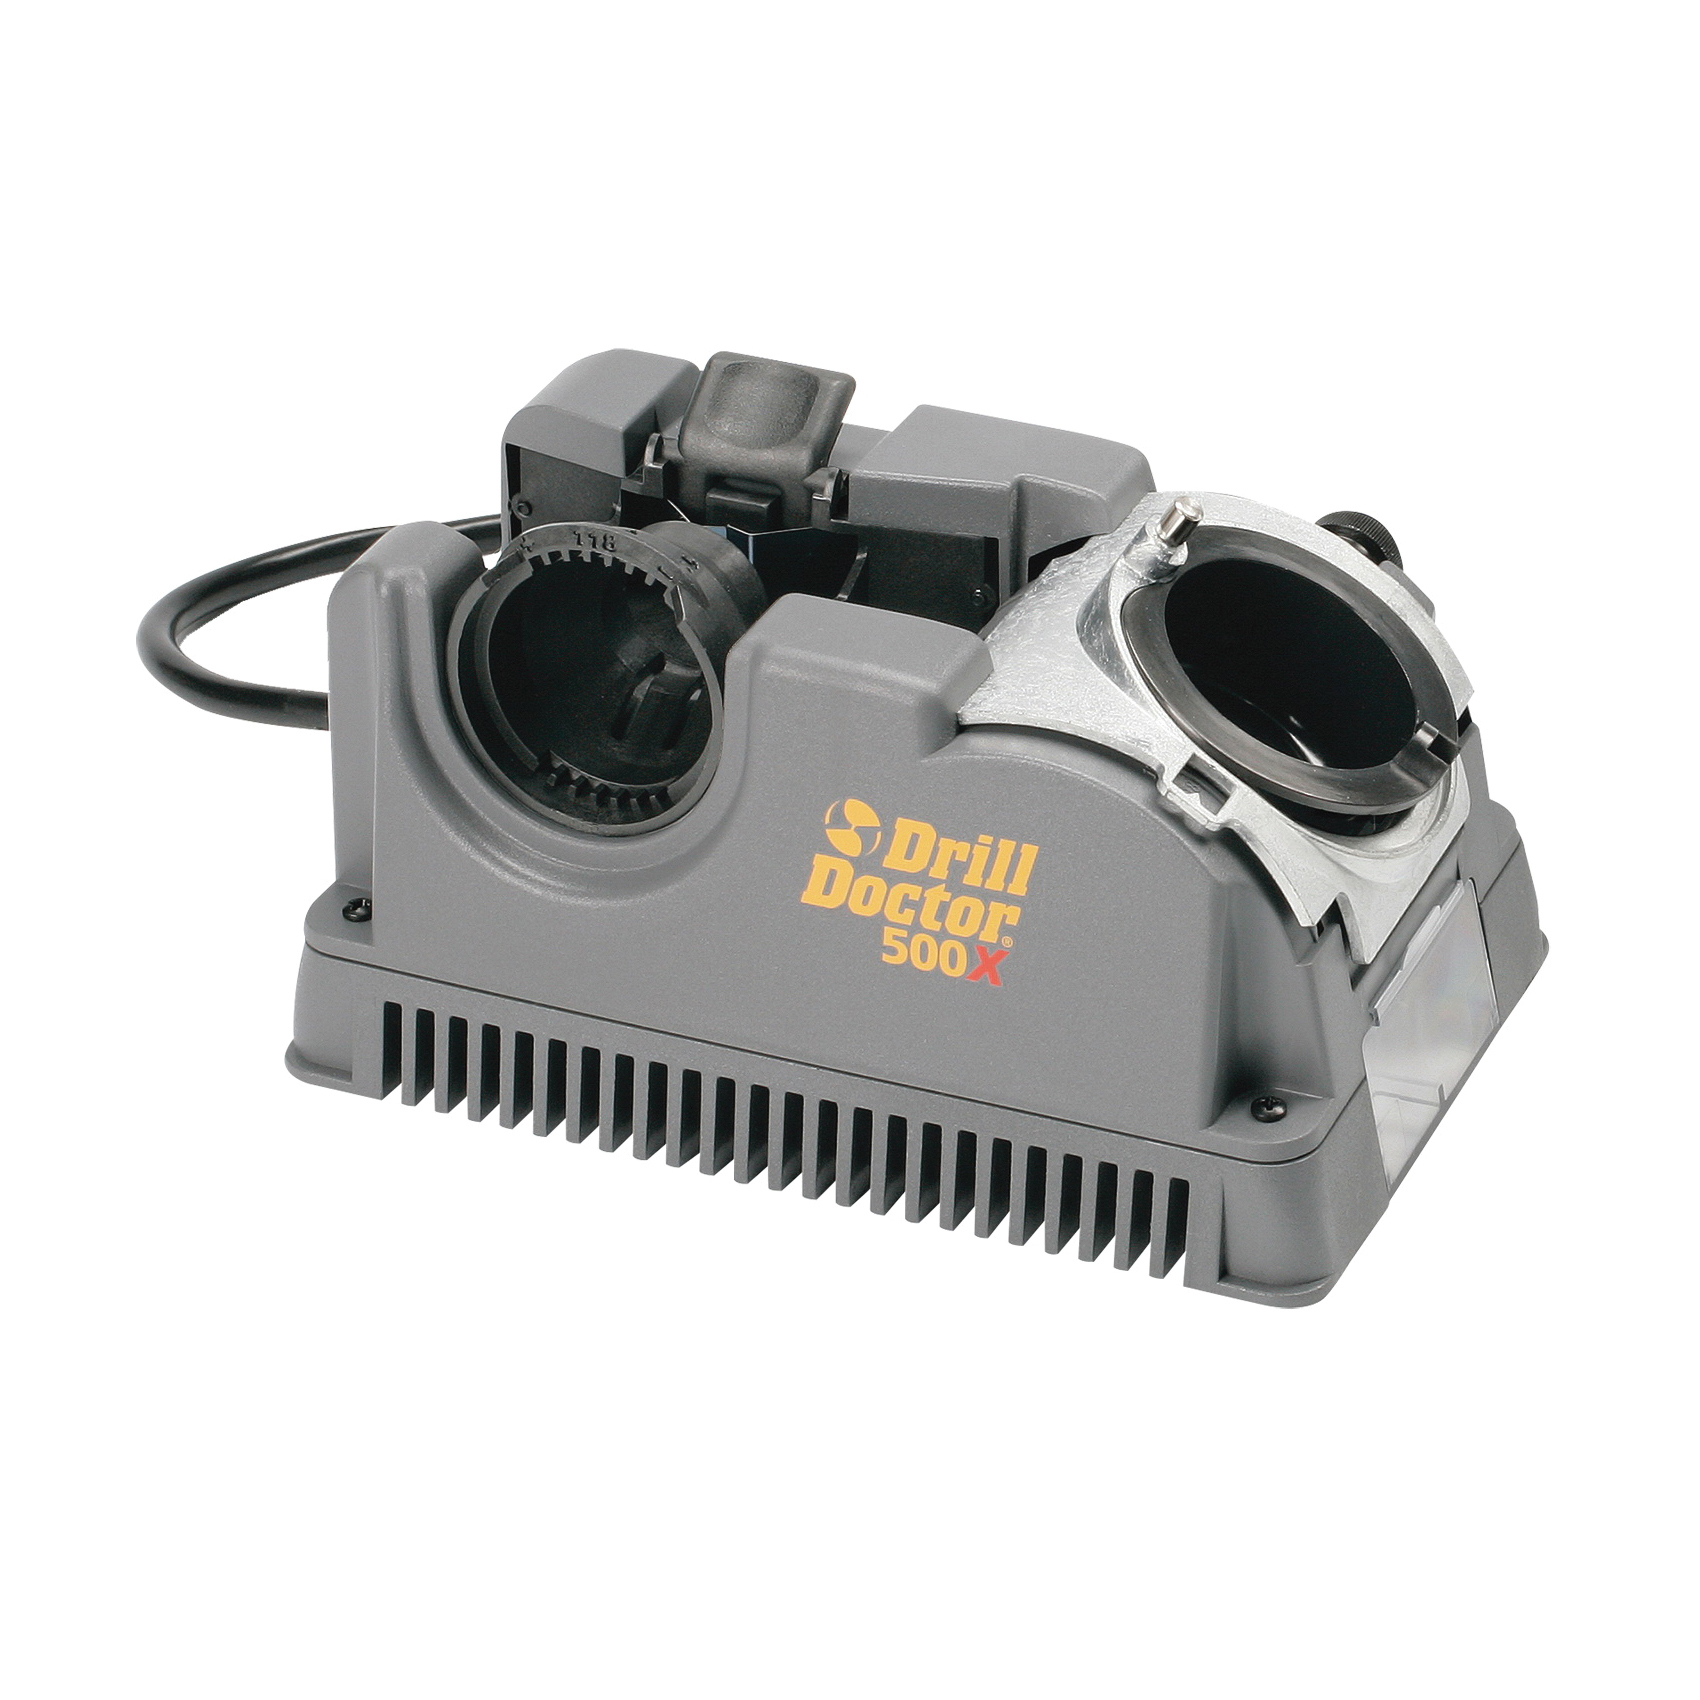 Picture of Drill Doctor DD500X Drill Bit Sharpener, 110 V, 1.75 A, 106.5 W